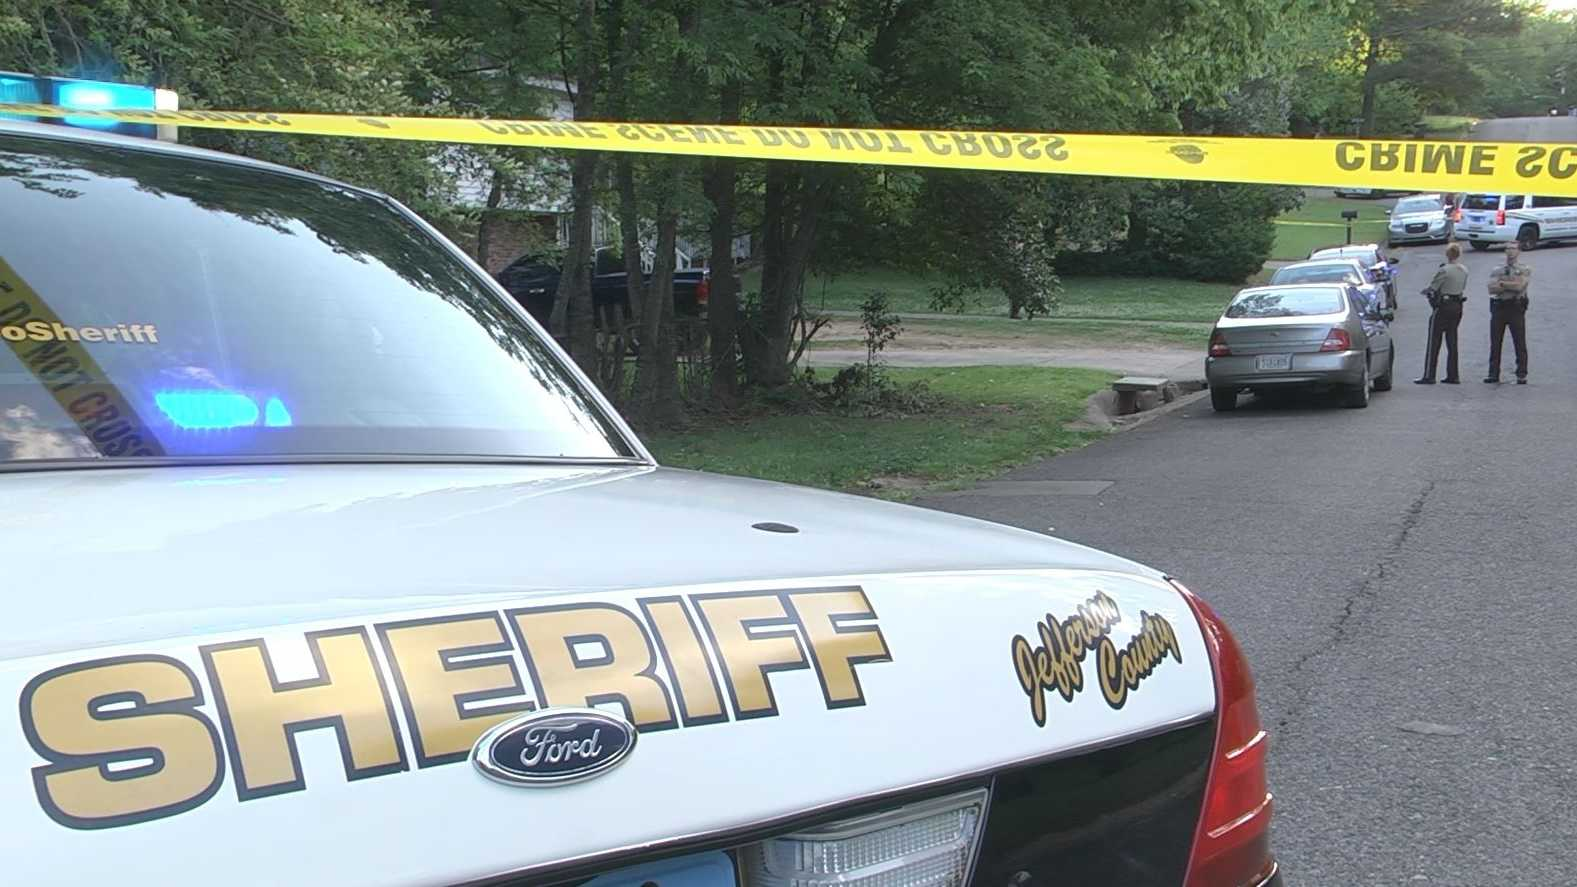 Detectives with the Jefferson County Sheriff's Office are investigating a homicide in the 500 block of 16th Terrace N.W. Thursday. Authorities said a 23-year-old woman was shot.